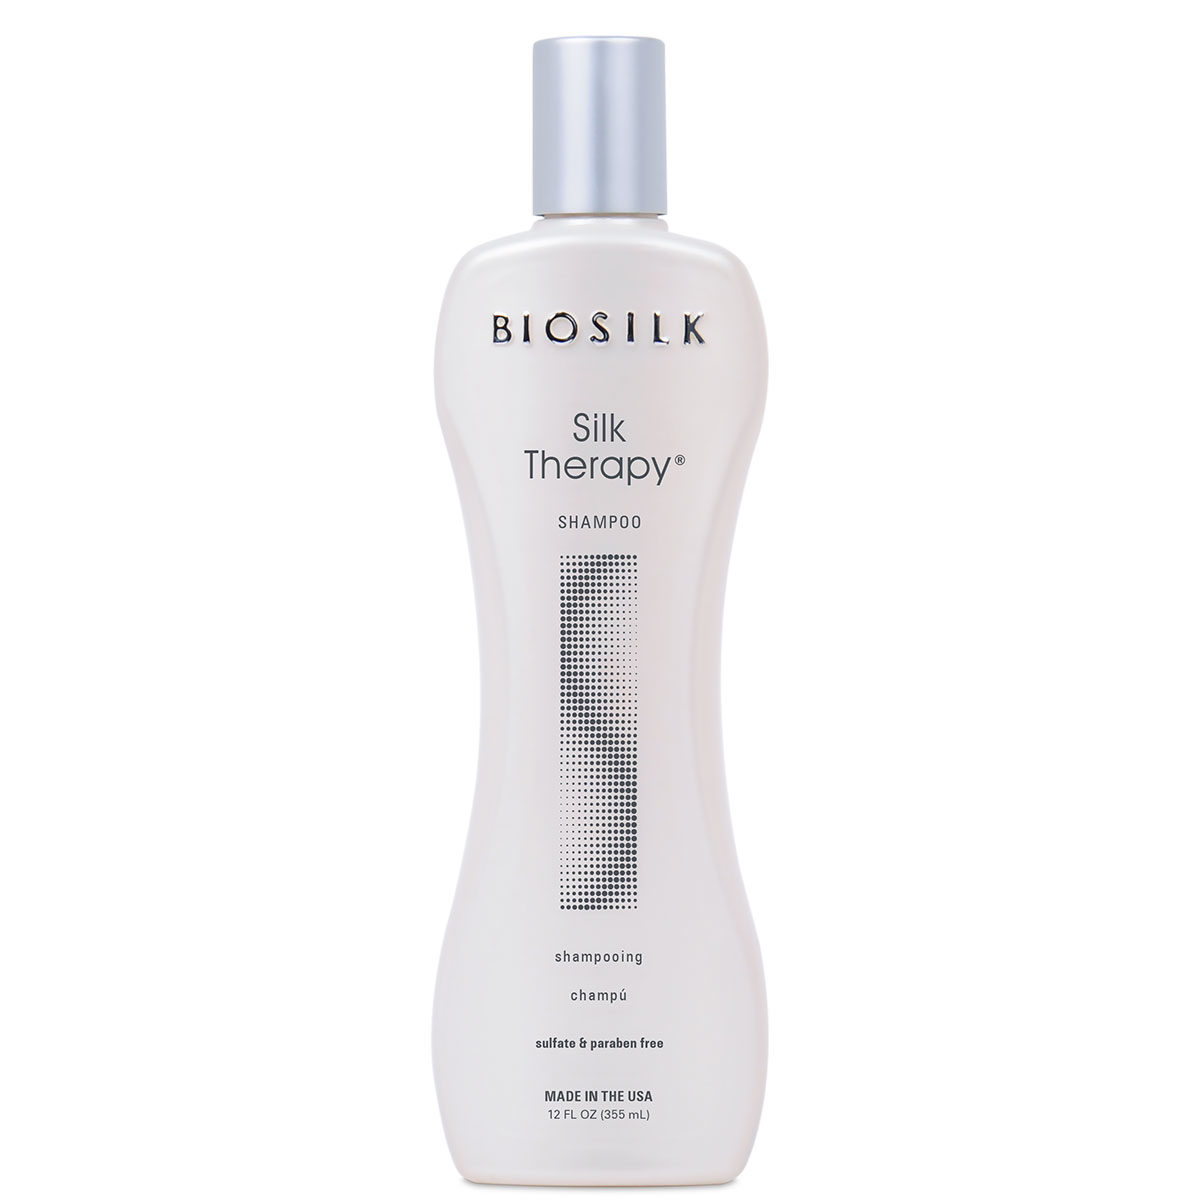 Biosilk-Silk-Therapy-Shampoo-12oz-NEW